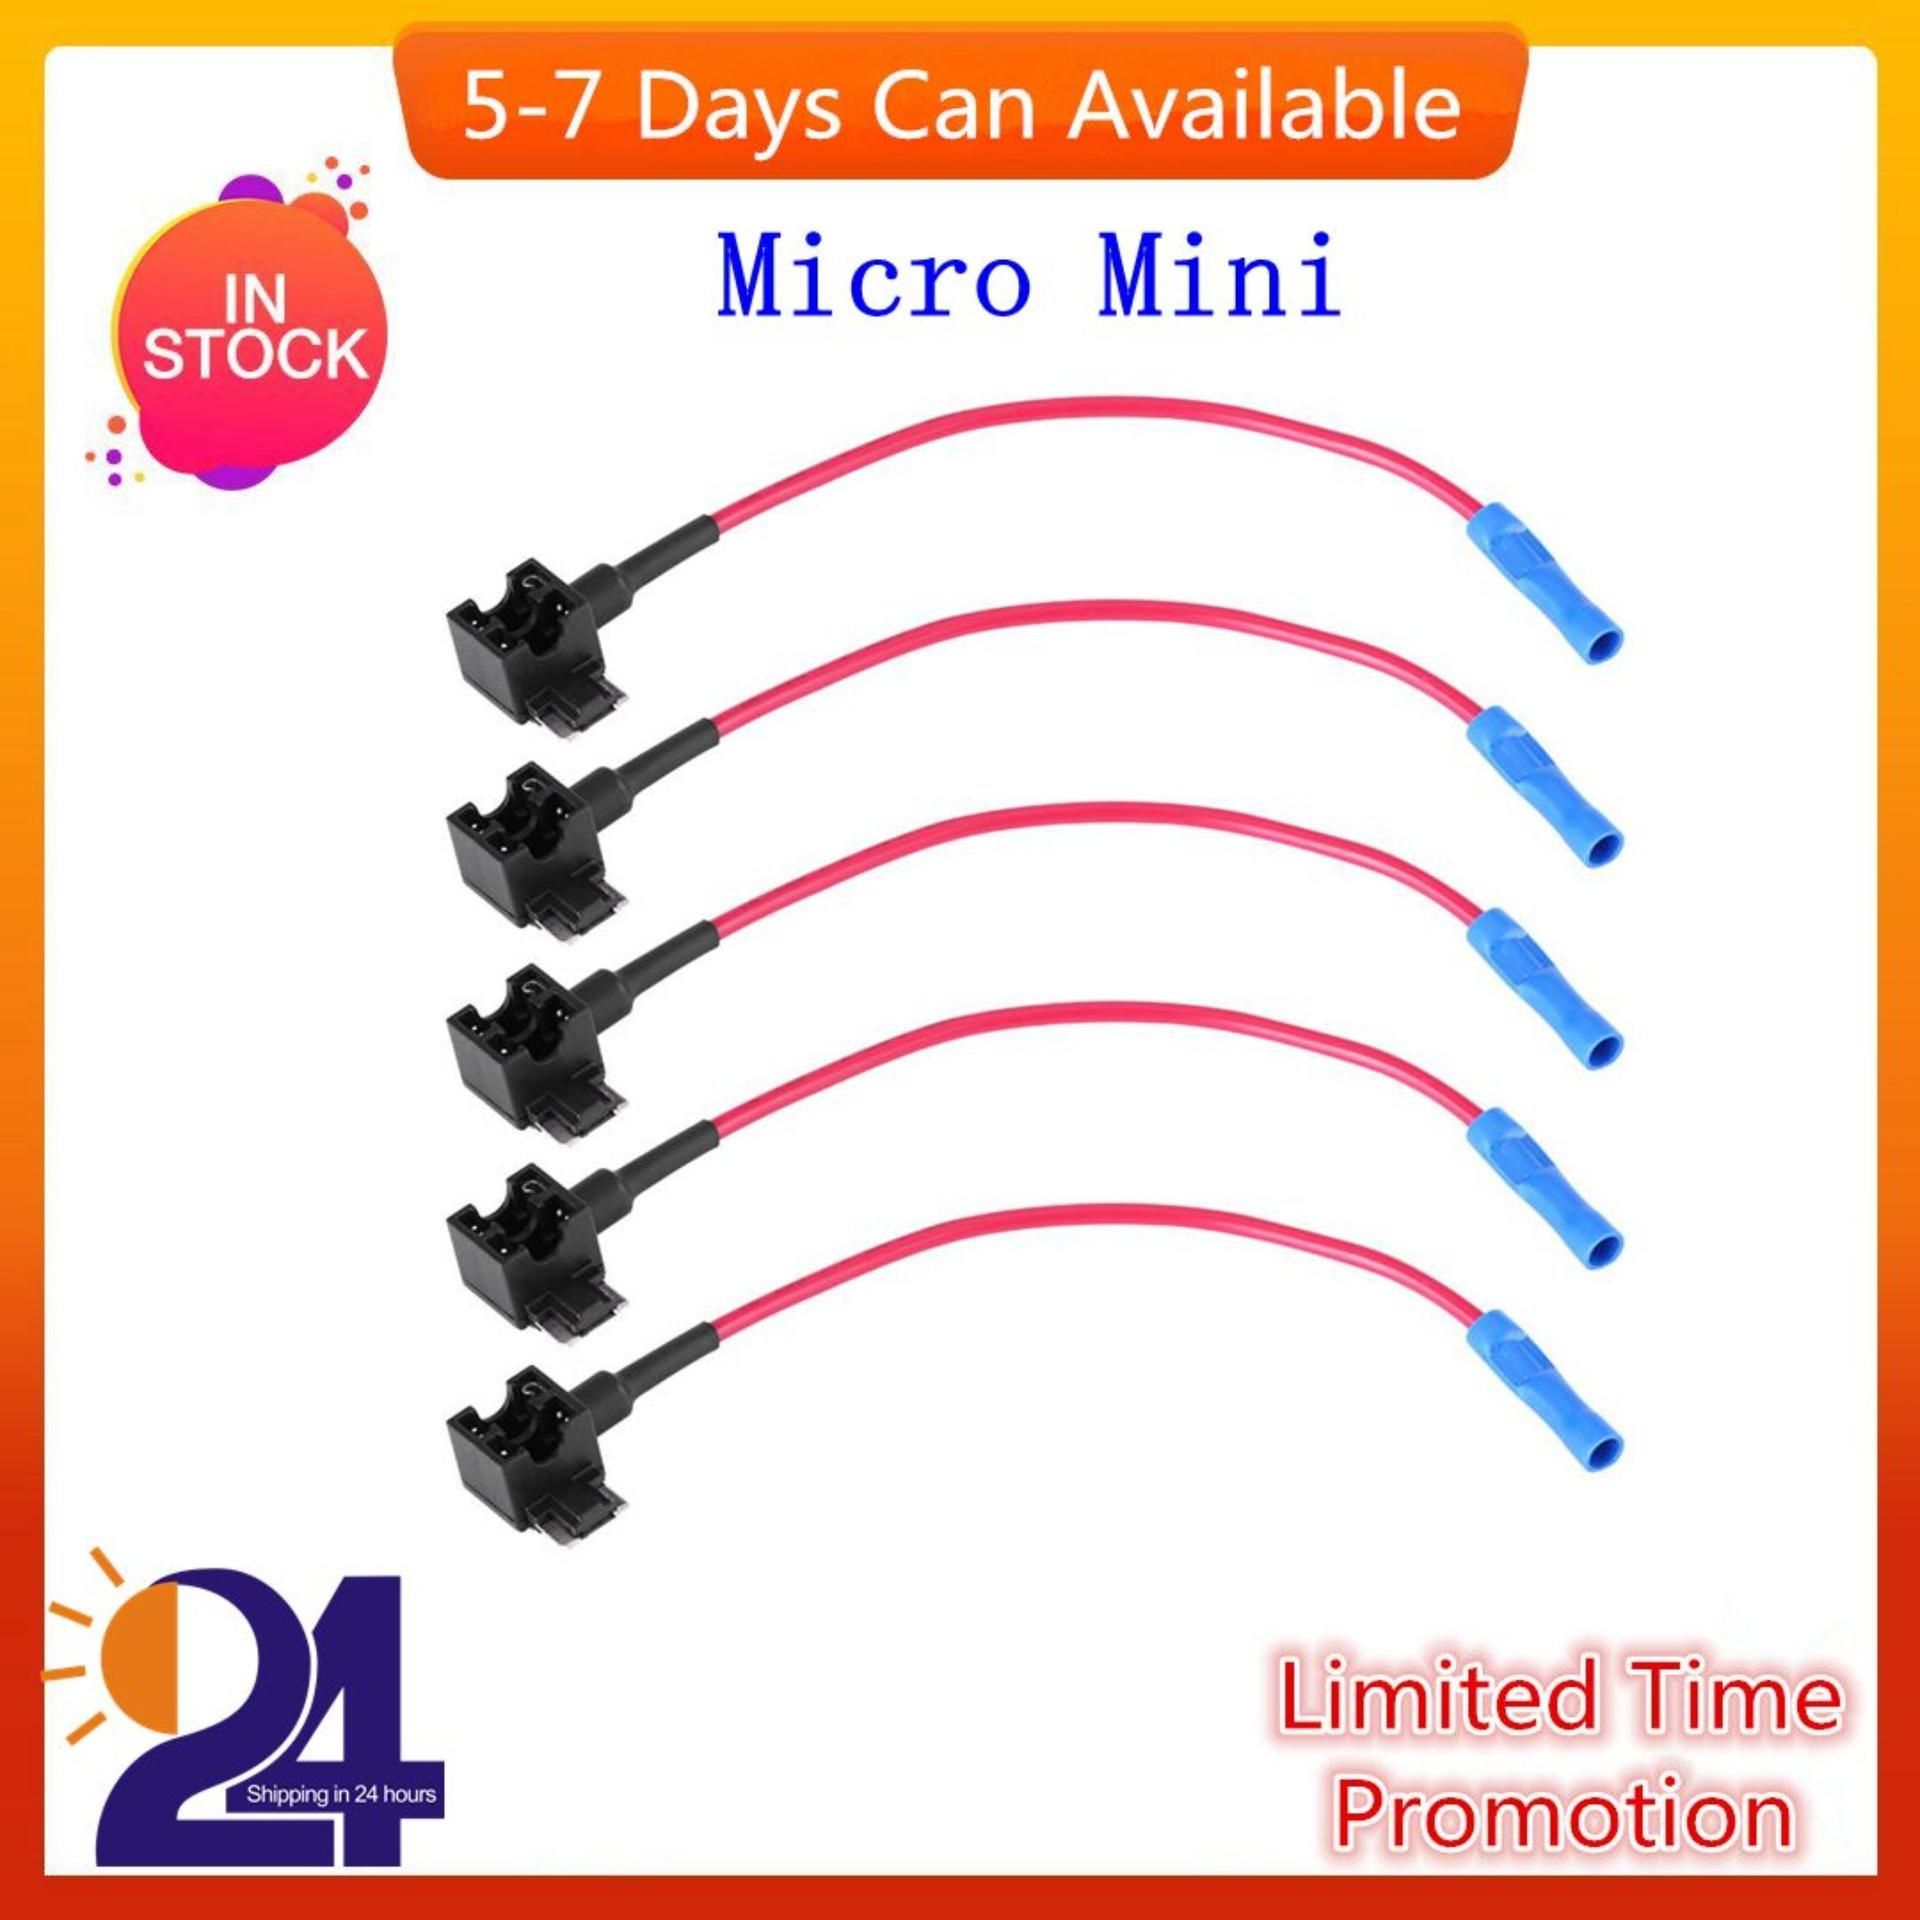 5pcs Car Auto Circuit Fuse Tap Adapters Blade Fuses Holder For Easy & Safe Use (micro Mini Type) - Intl By 1buycart.